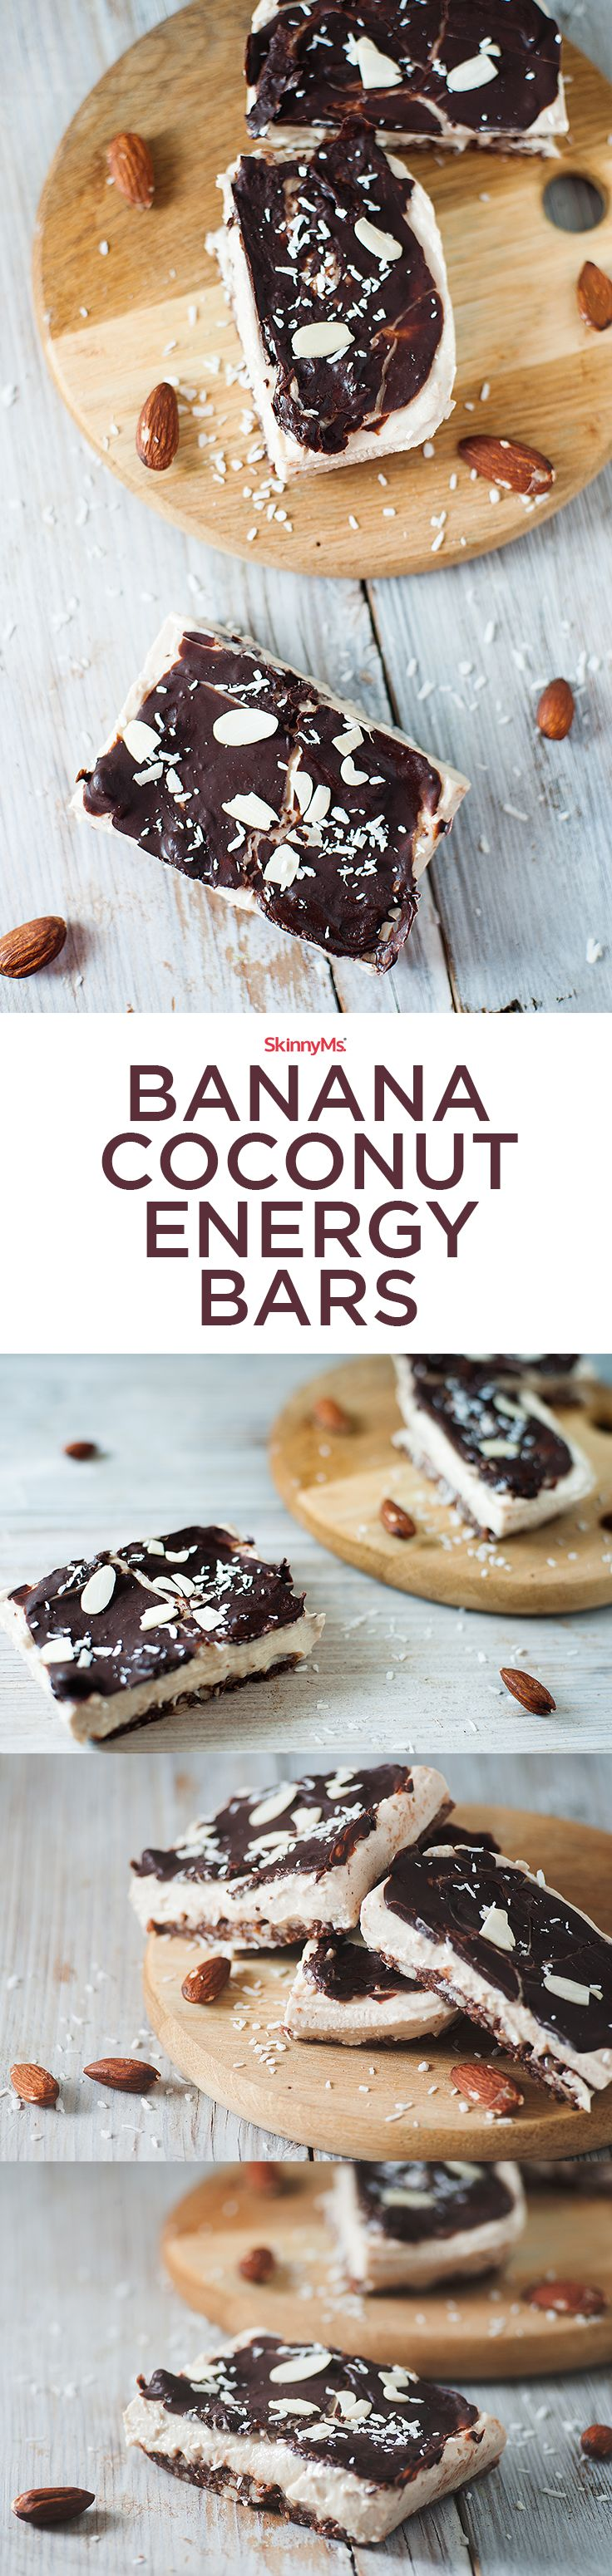 Our Banana Coconut Energy Bars include clean ingredients, so they taste far better than any you can find on a shelf!